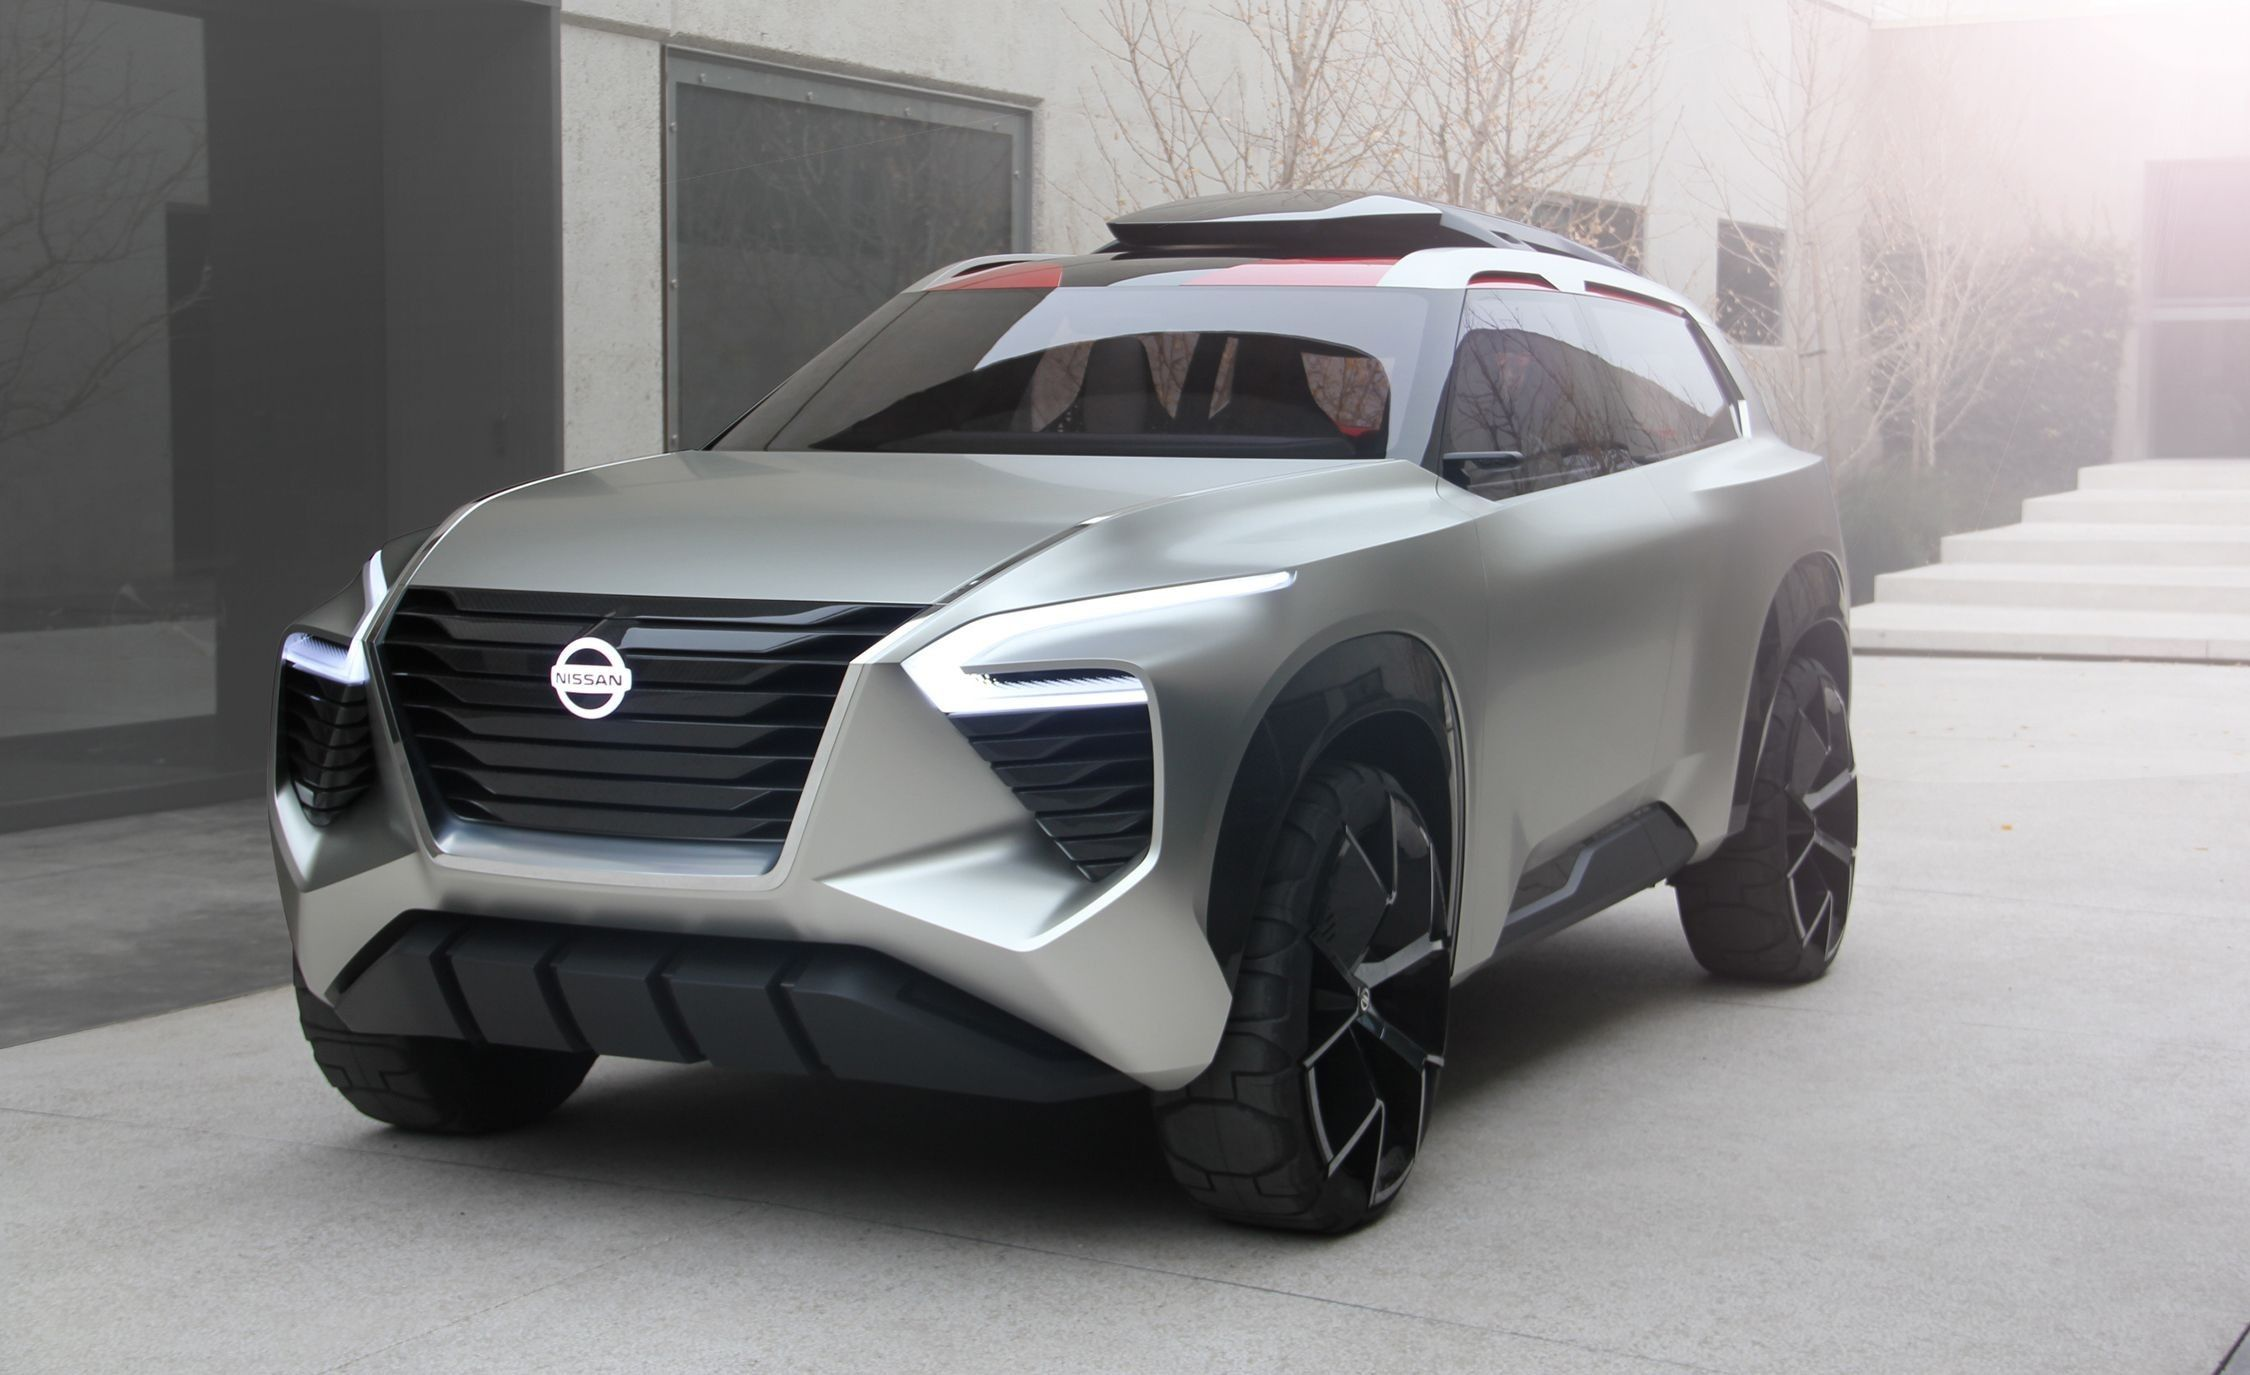 Nissan Xmotion 2020 Price and Release Date di 2020